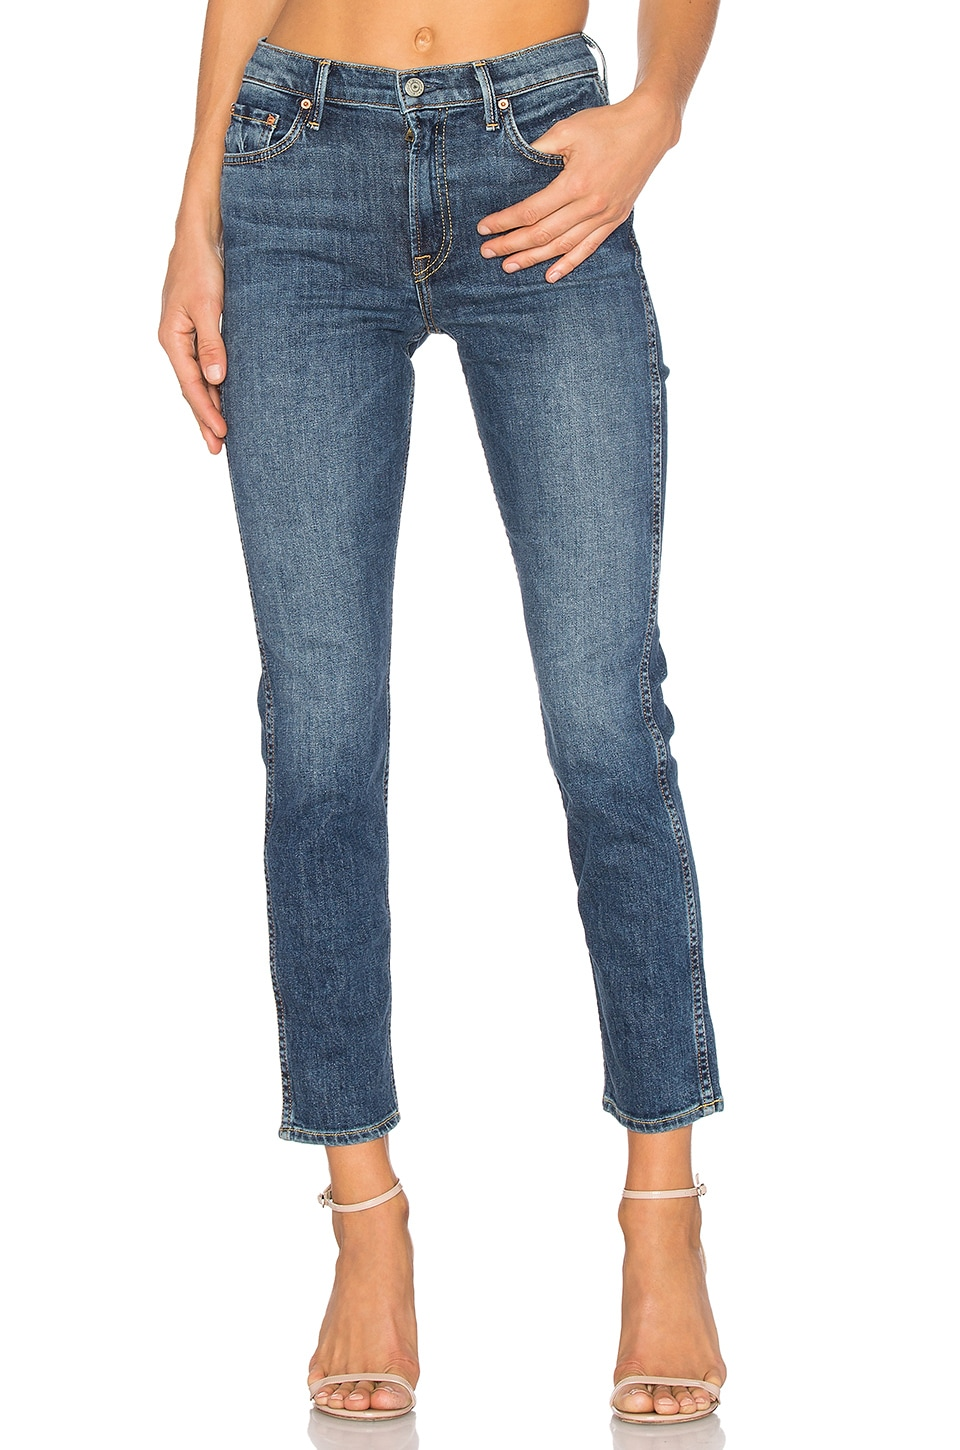 GRLFRND Naomi High-Rise Stretch Jean in American Pie